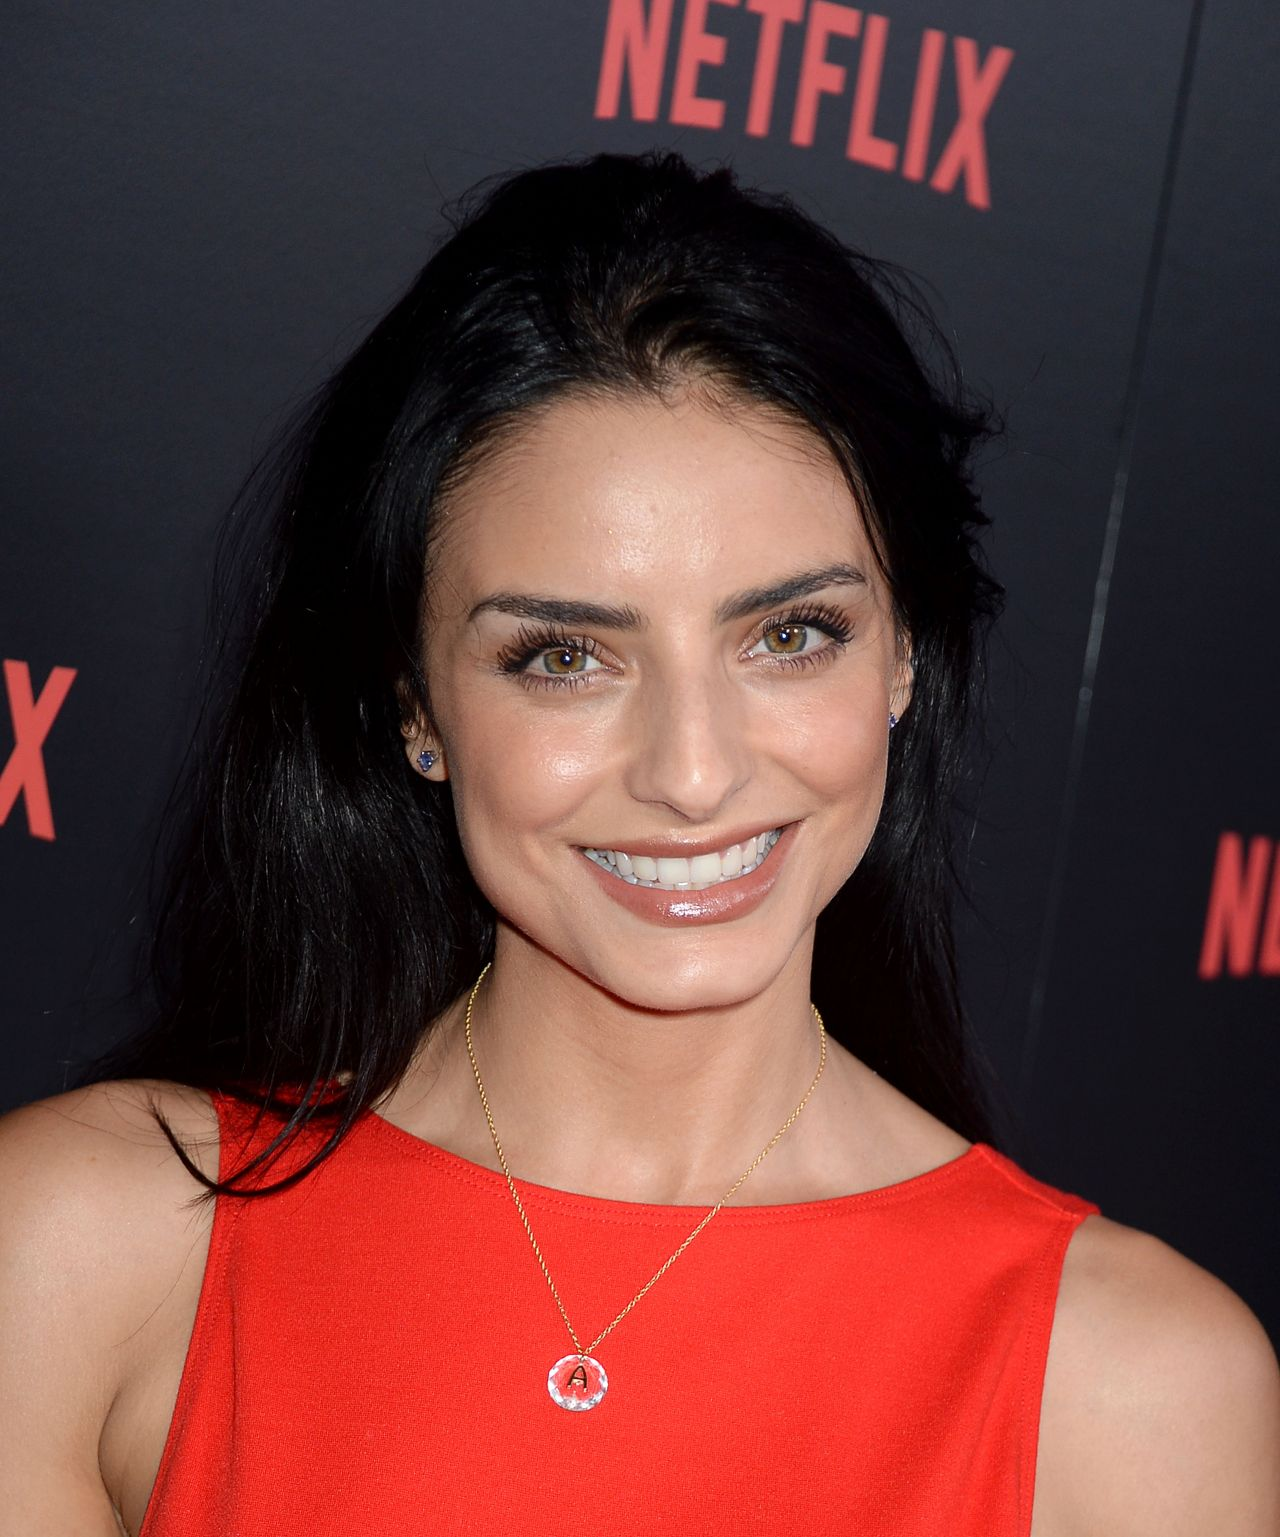 Aislinn derbez in easy s01e04 4